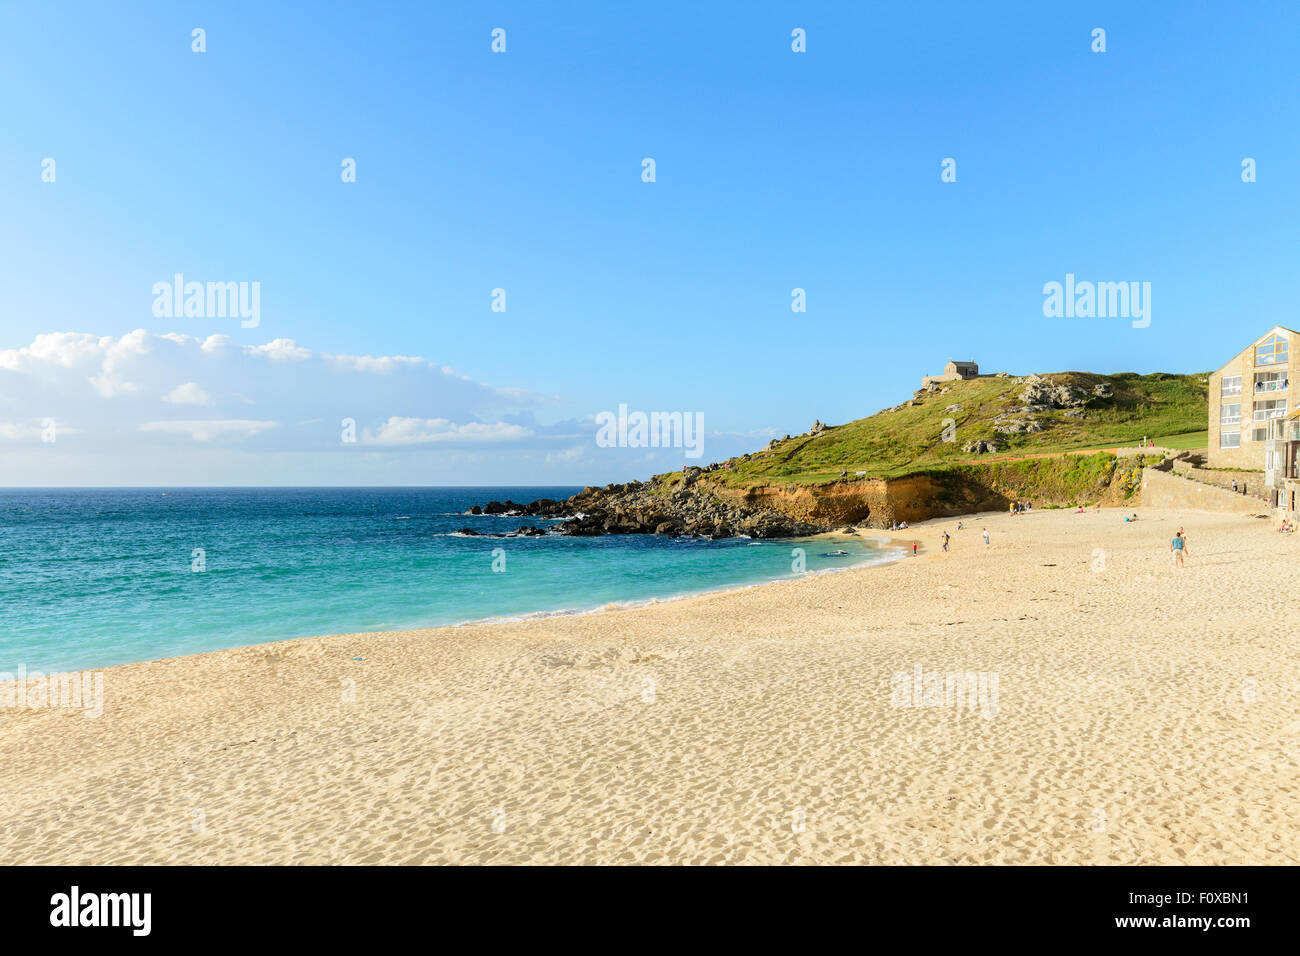 Porthmeor Beach, St Ives, Cornwall, England, U.K. Stock Photo